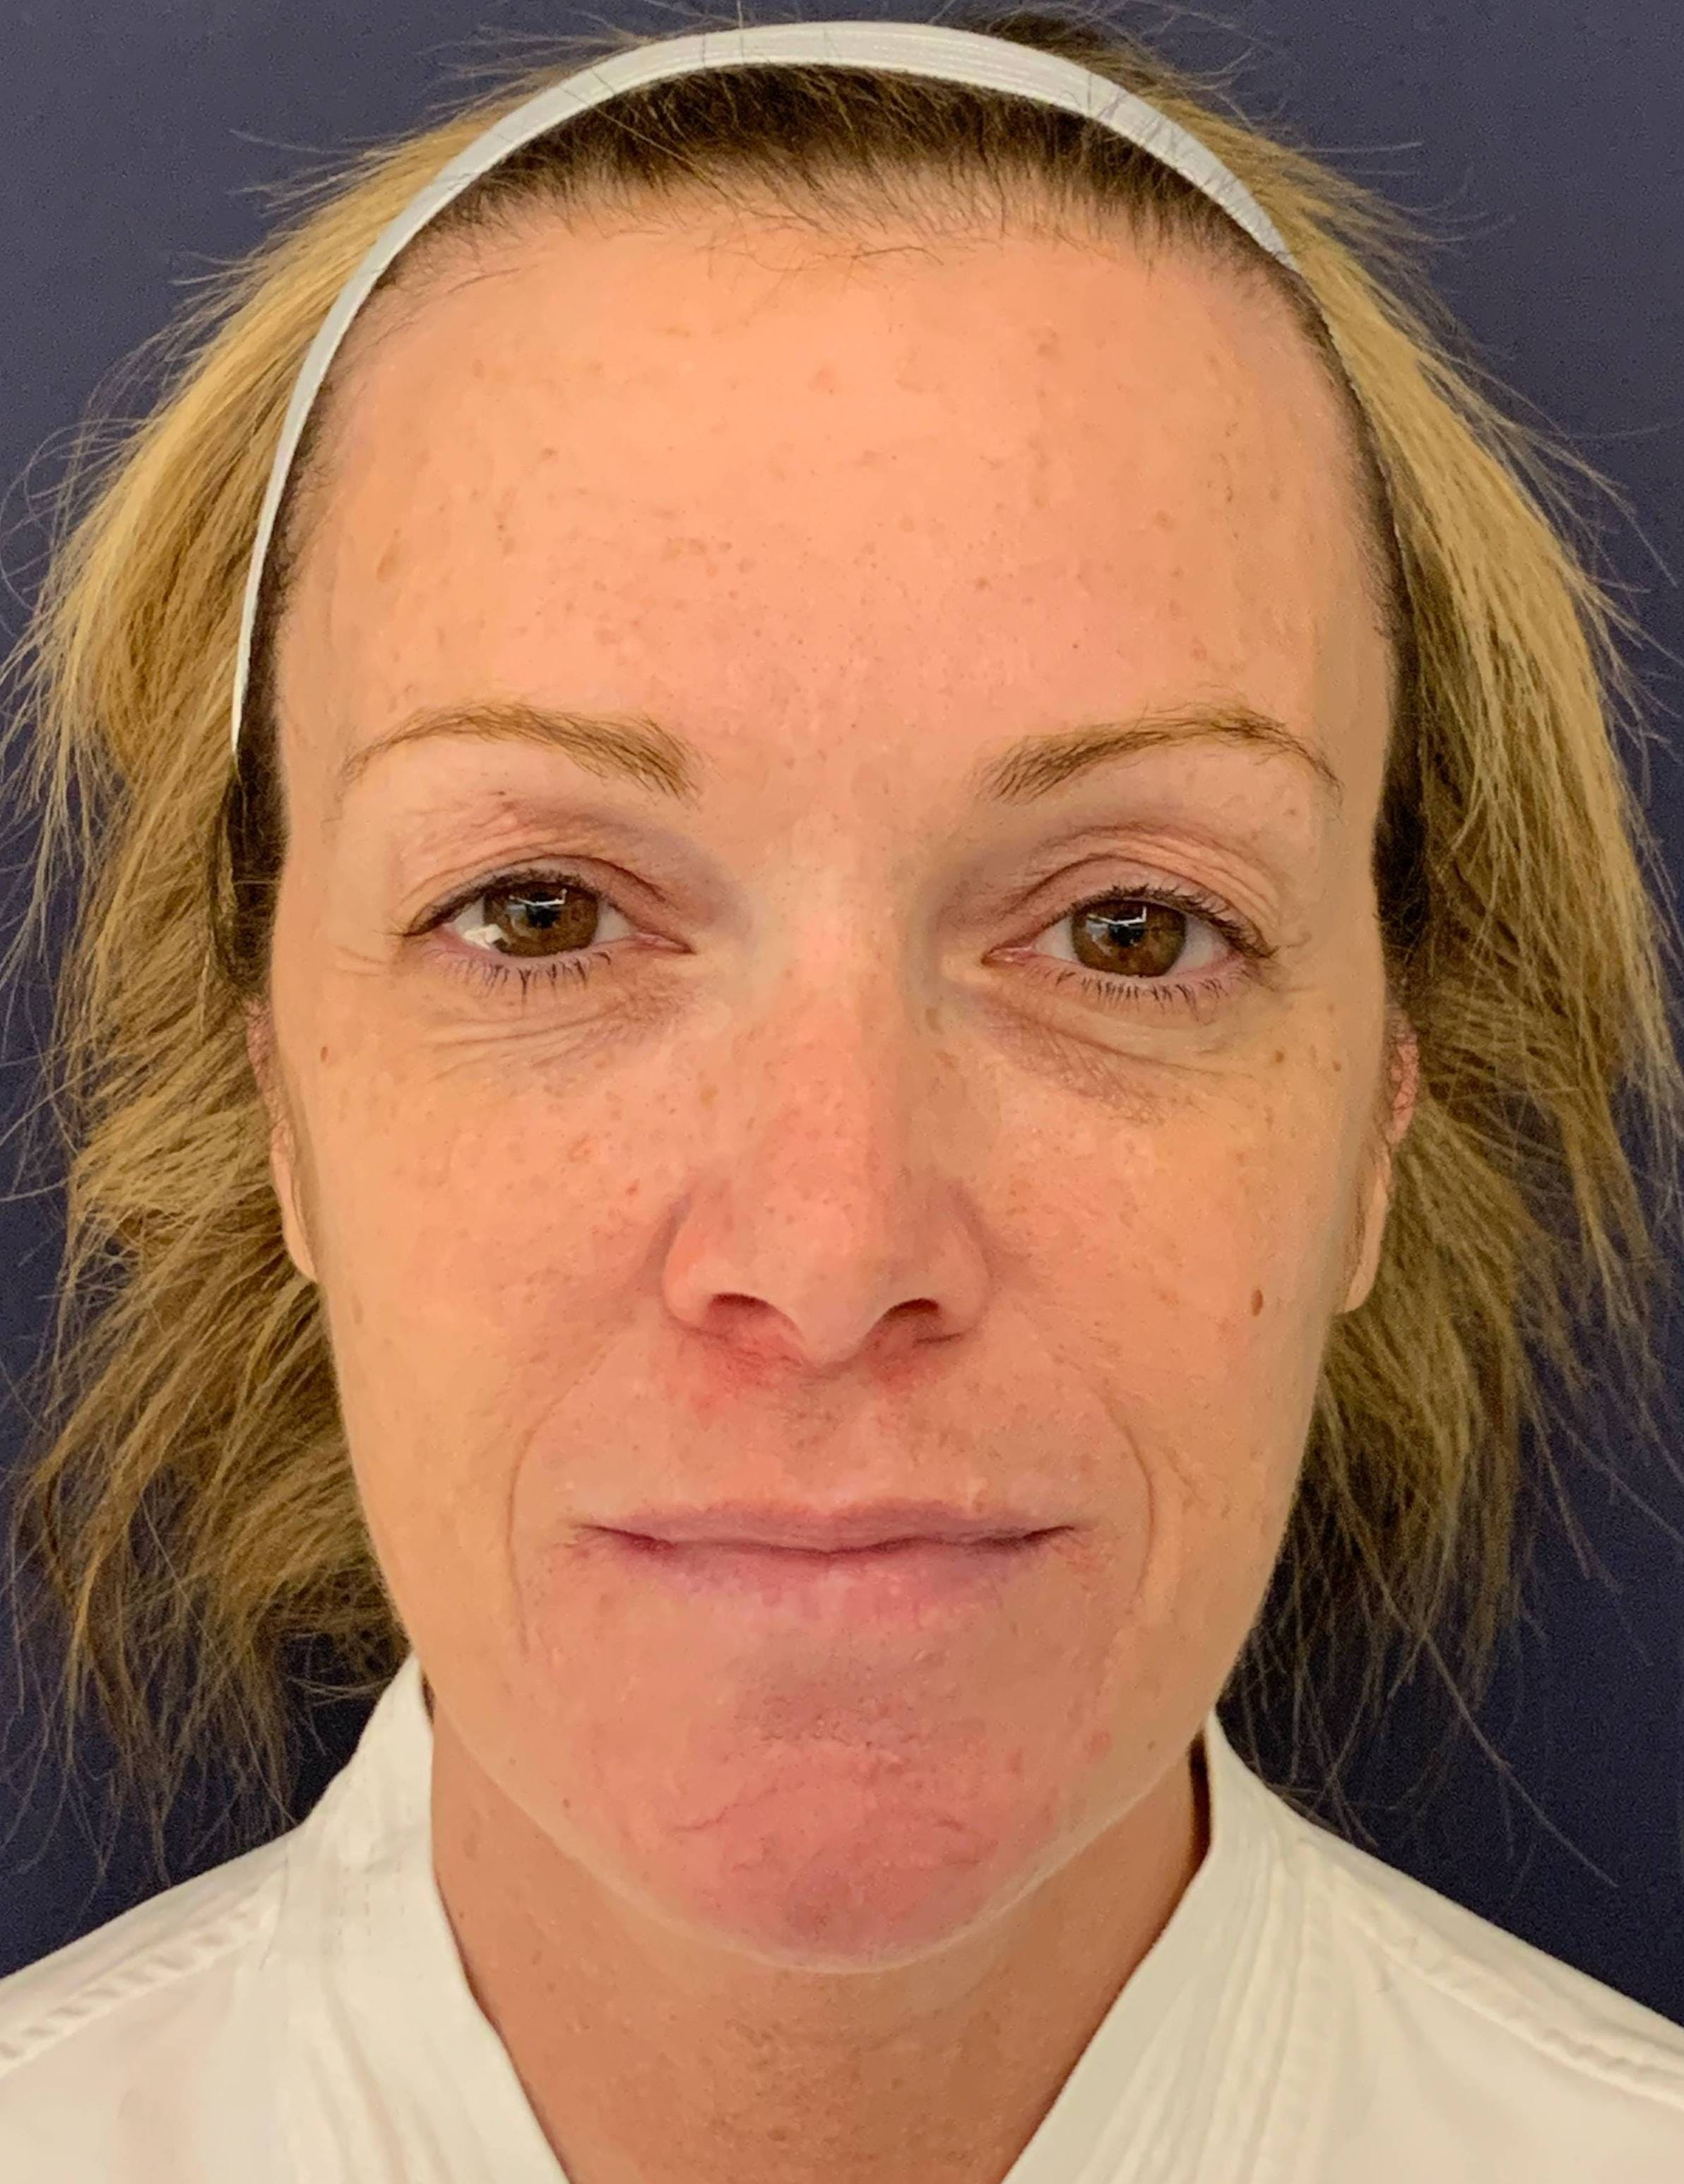 Blepharoplasty (Eyelid Surgery) Gallery - Patient 4447876 - Image 1